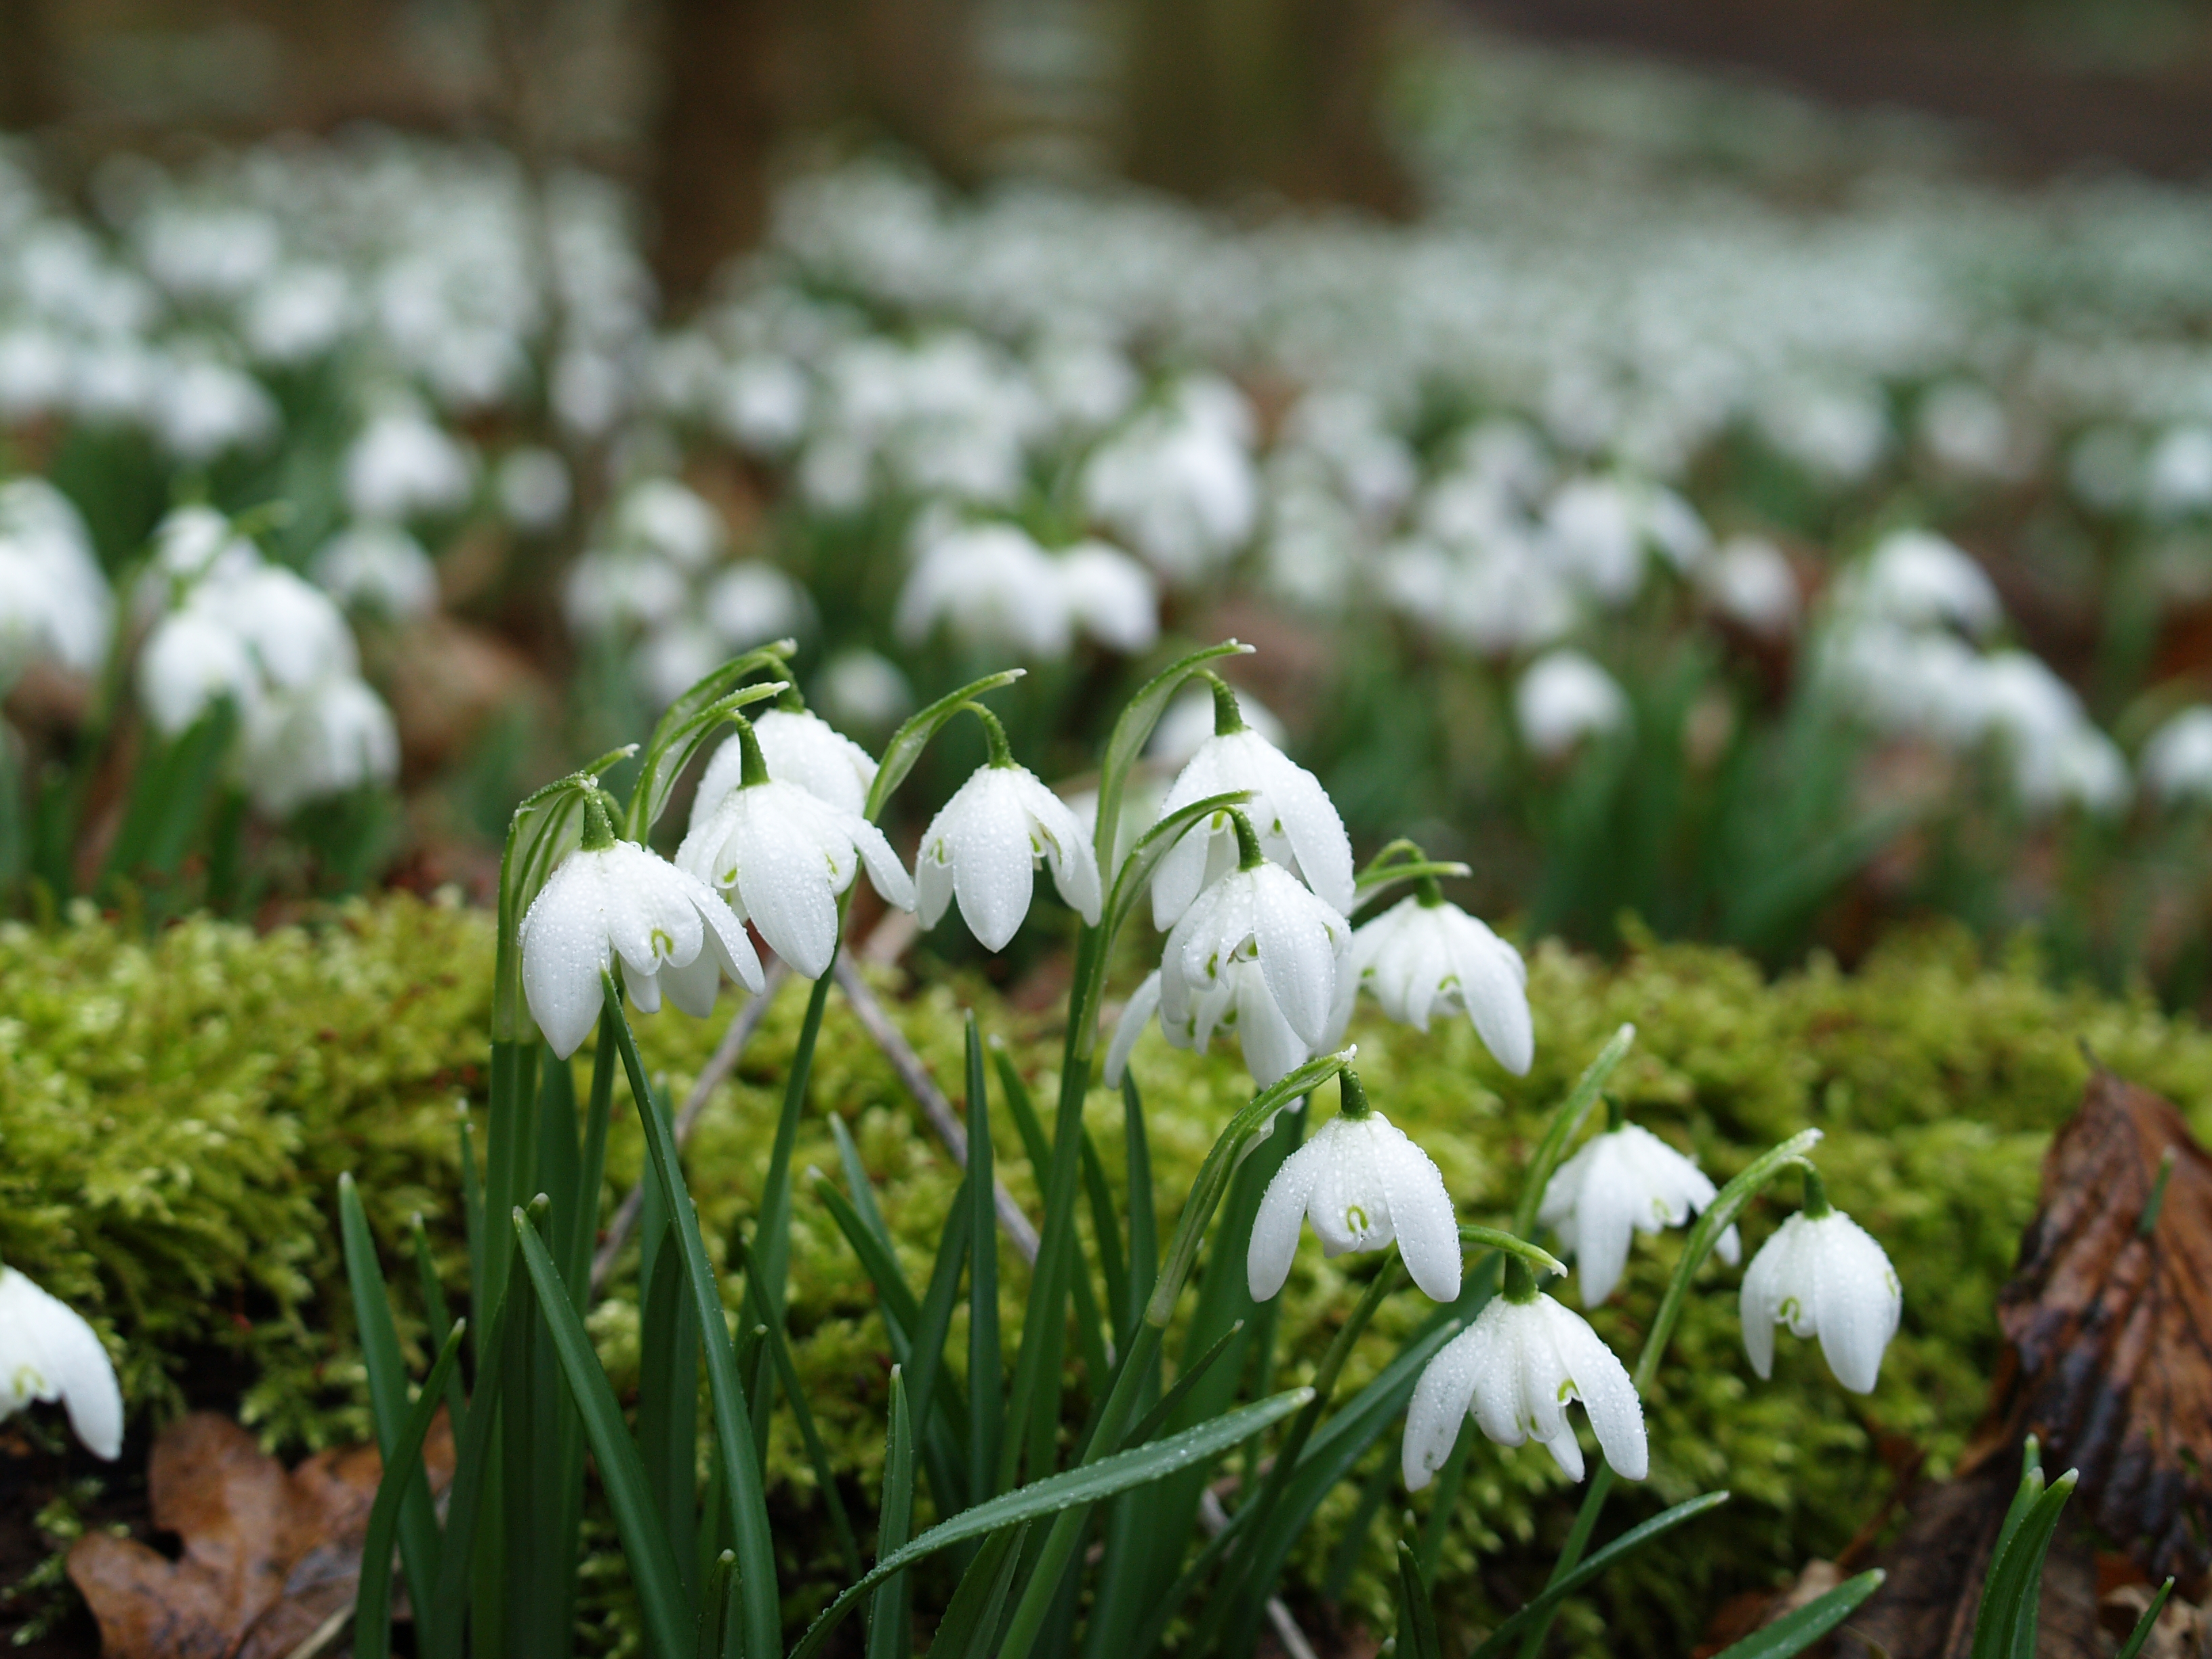 Snowdrops at Ickworth. (National Trust Images/PA)